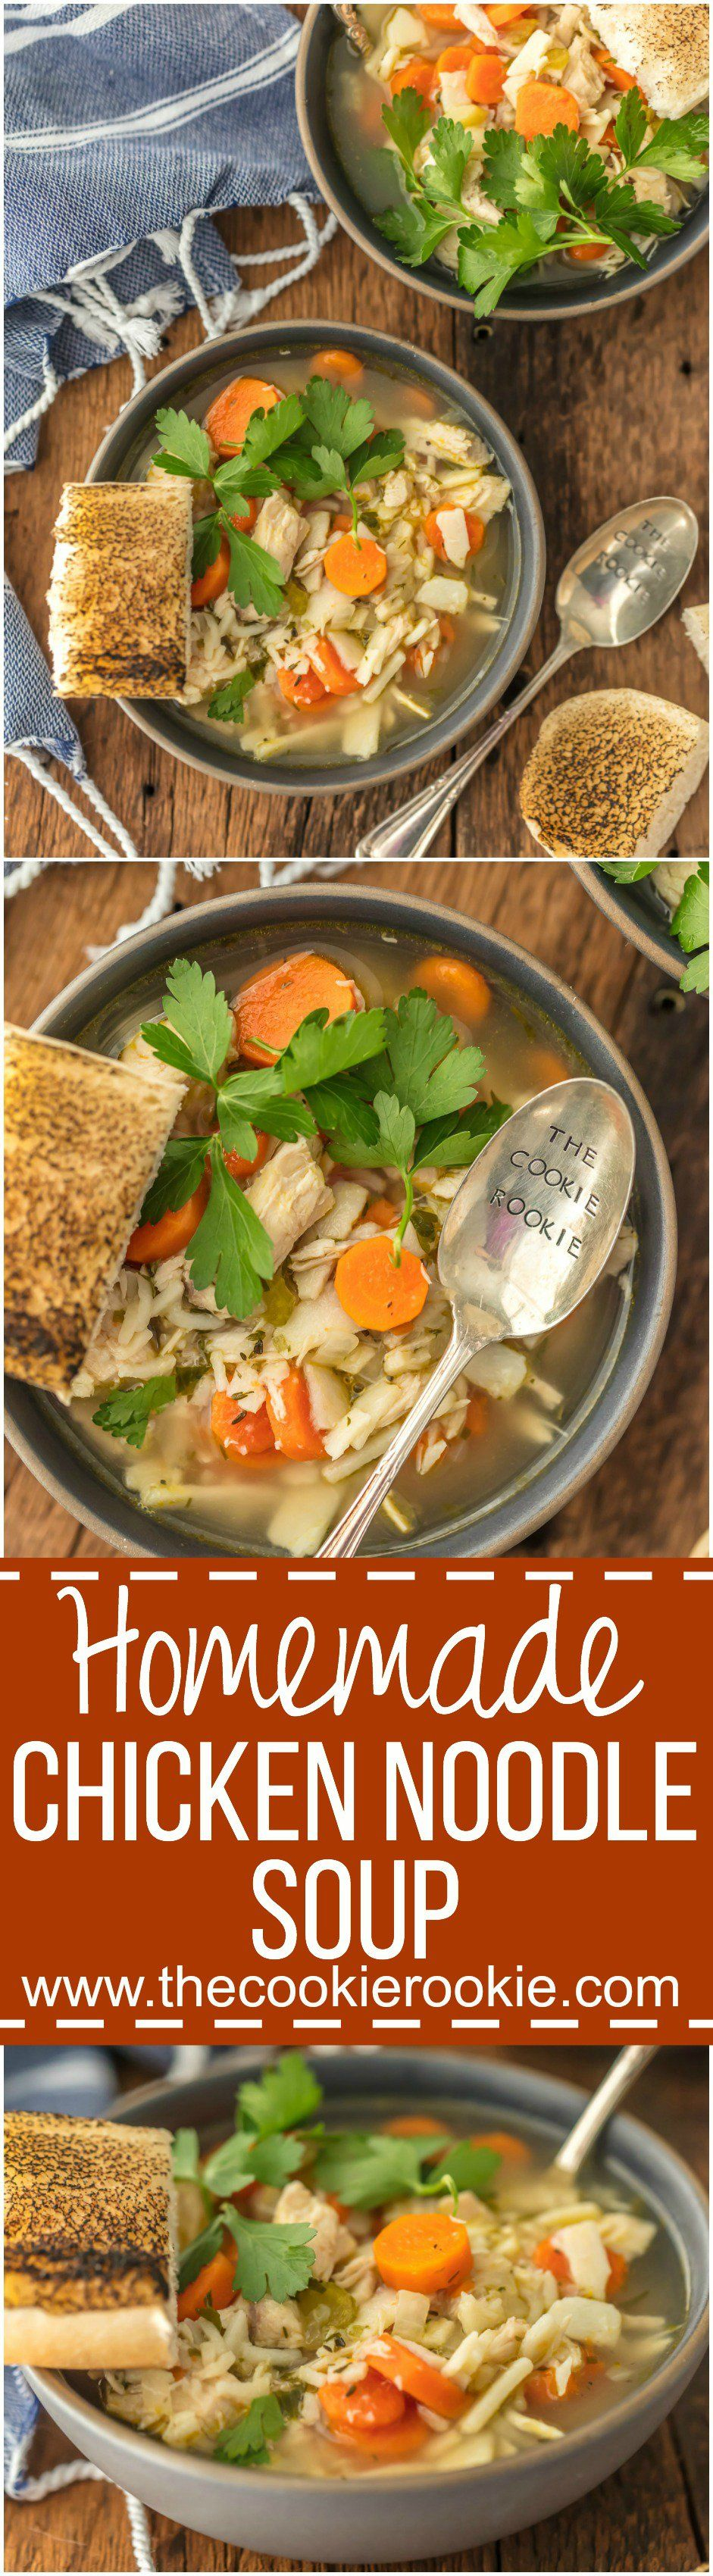 Theres nothing better than bhg home blogger contributor theres nothing better than homemade chicken noodle soup the ultimate comfort food made right forumfinder Choice Image